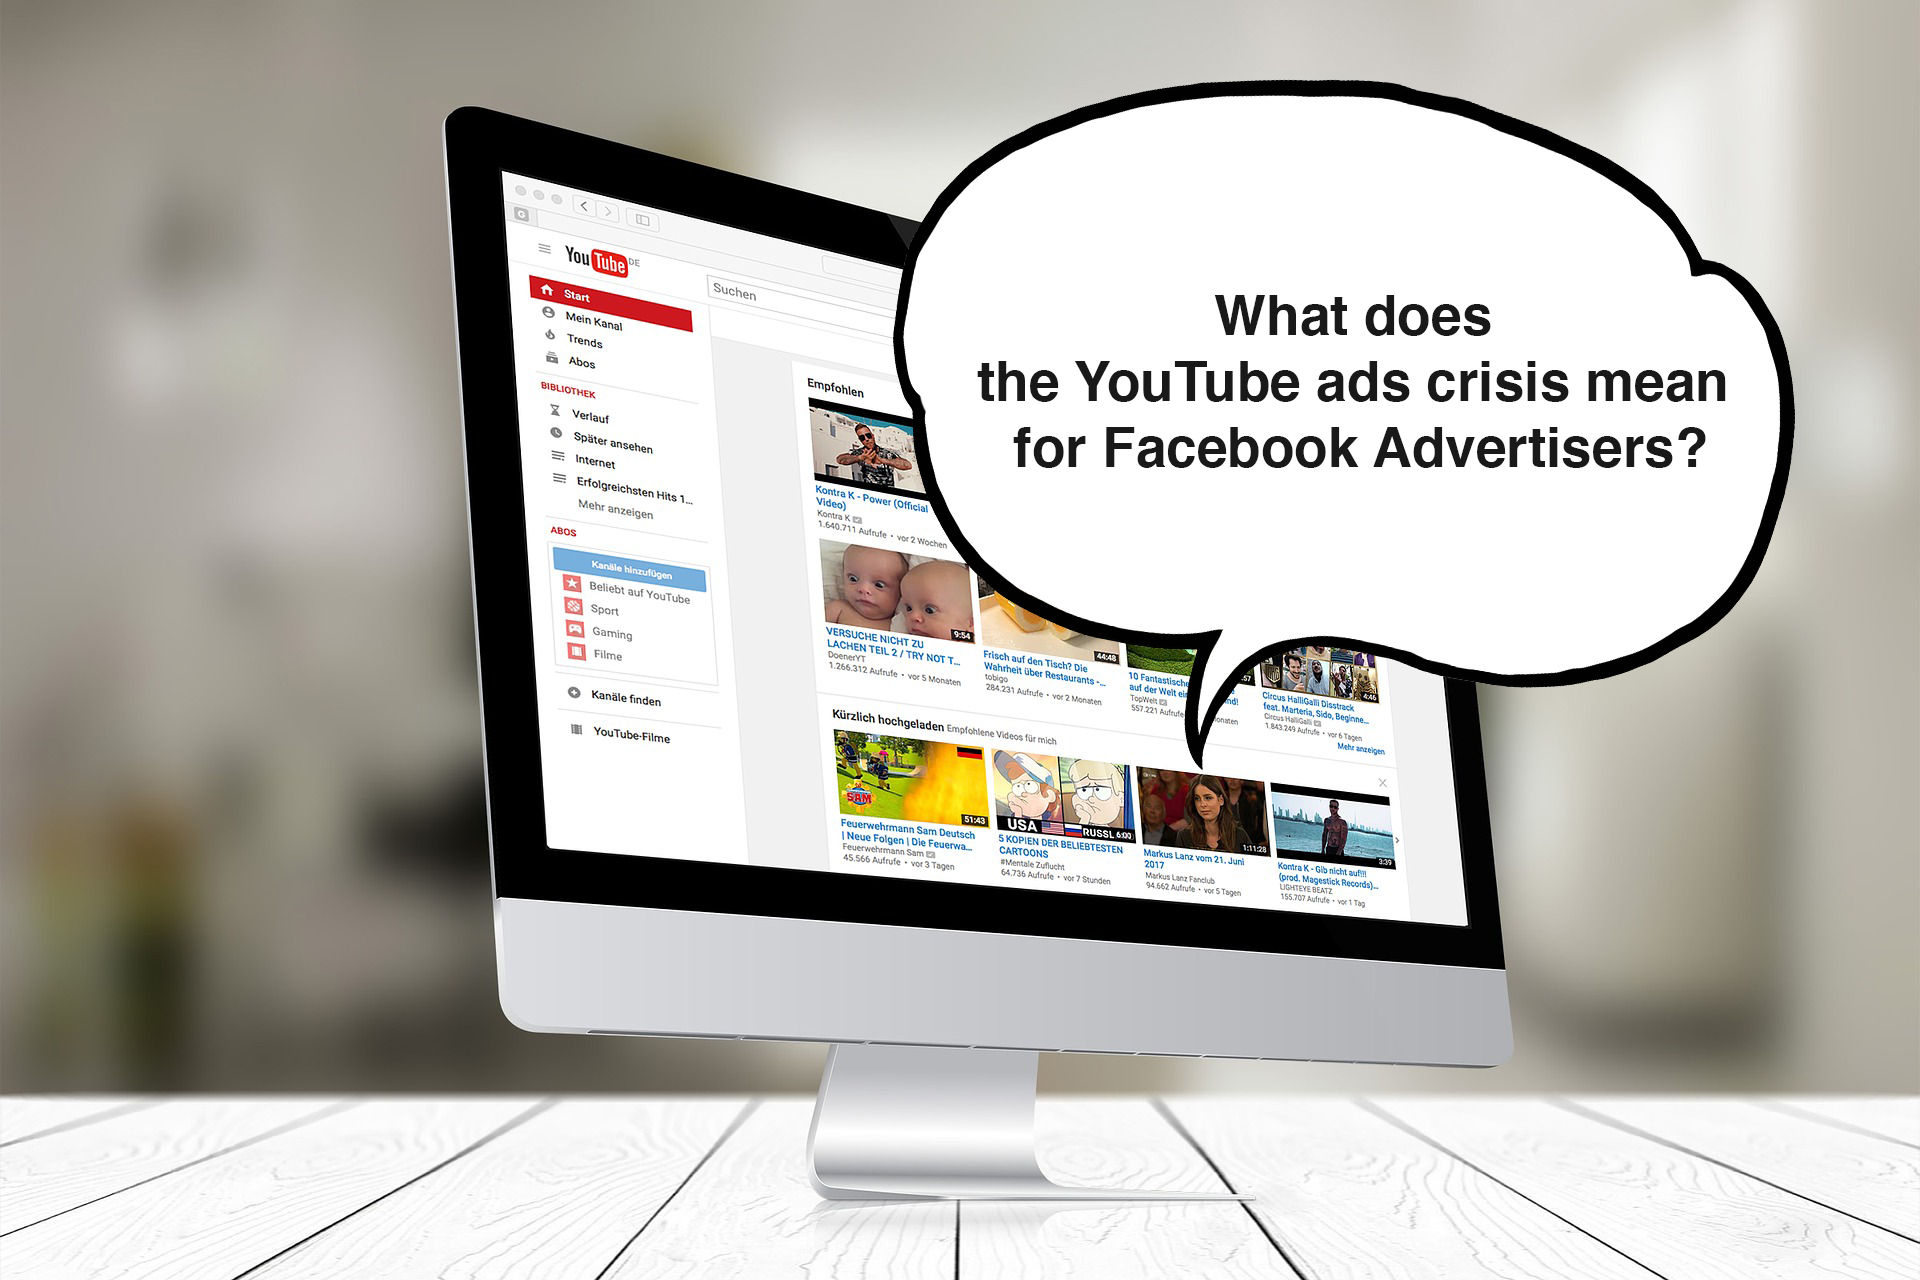 What does the Youtube ads crisis mean for Facebook Advertisers?